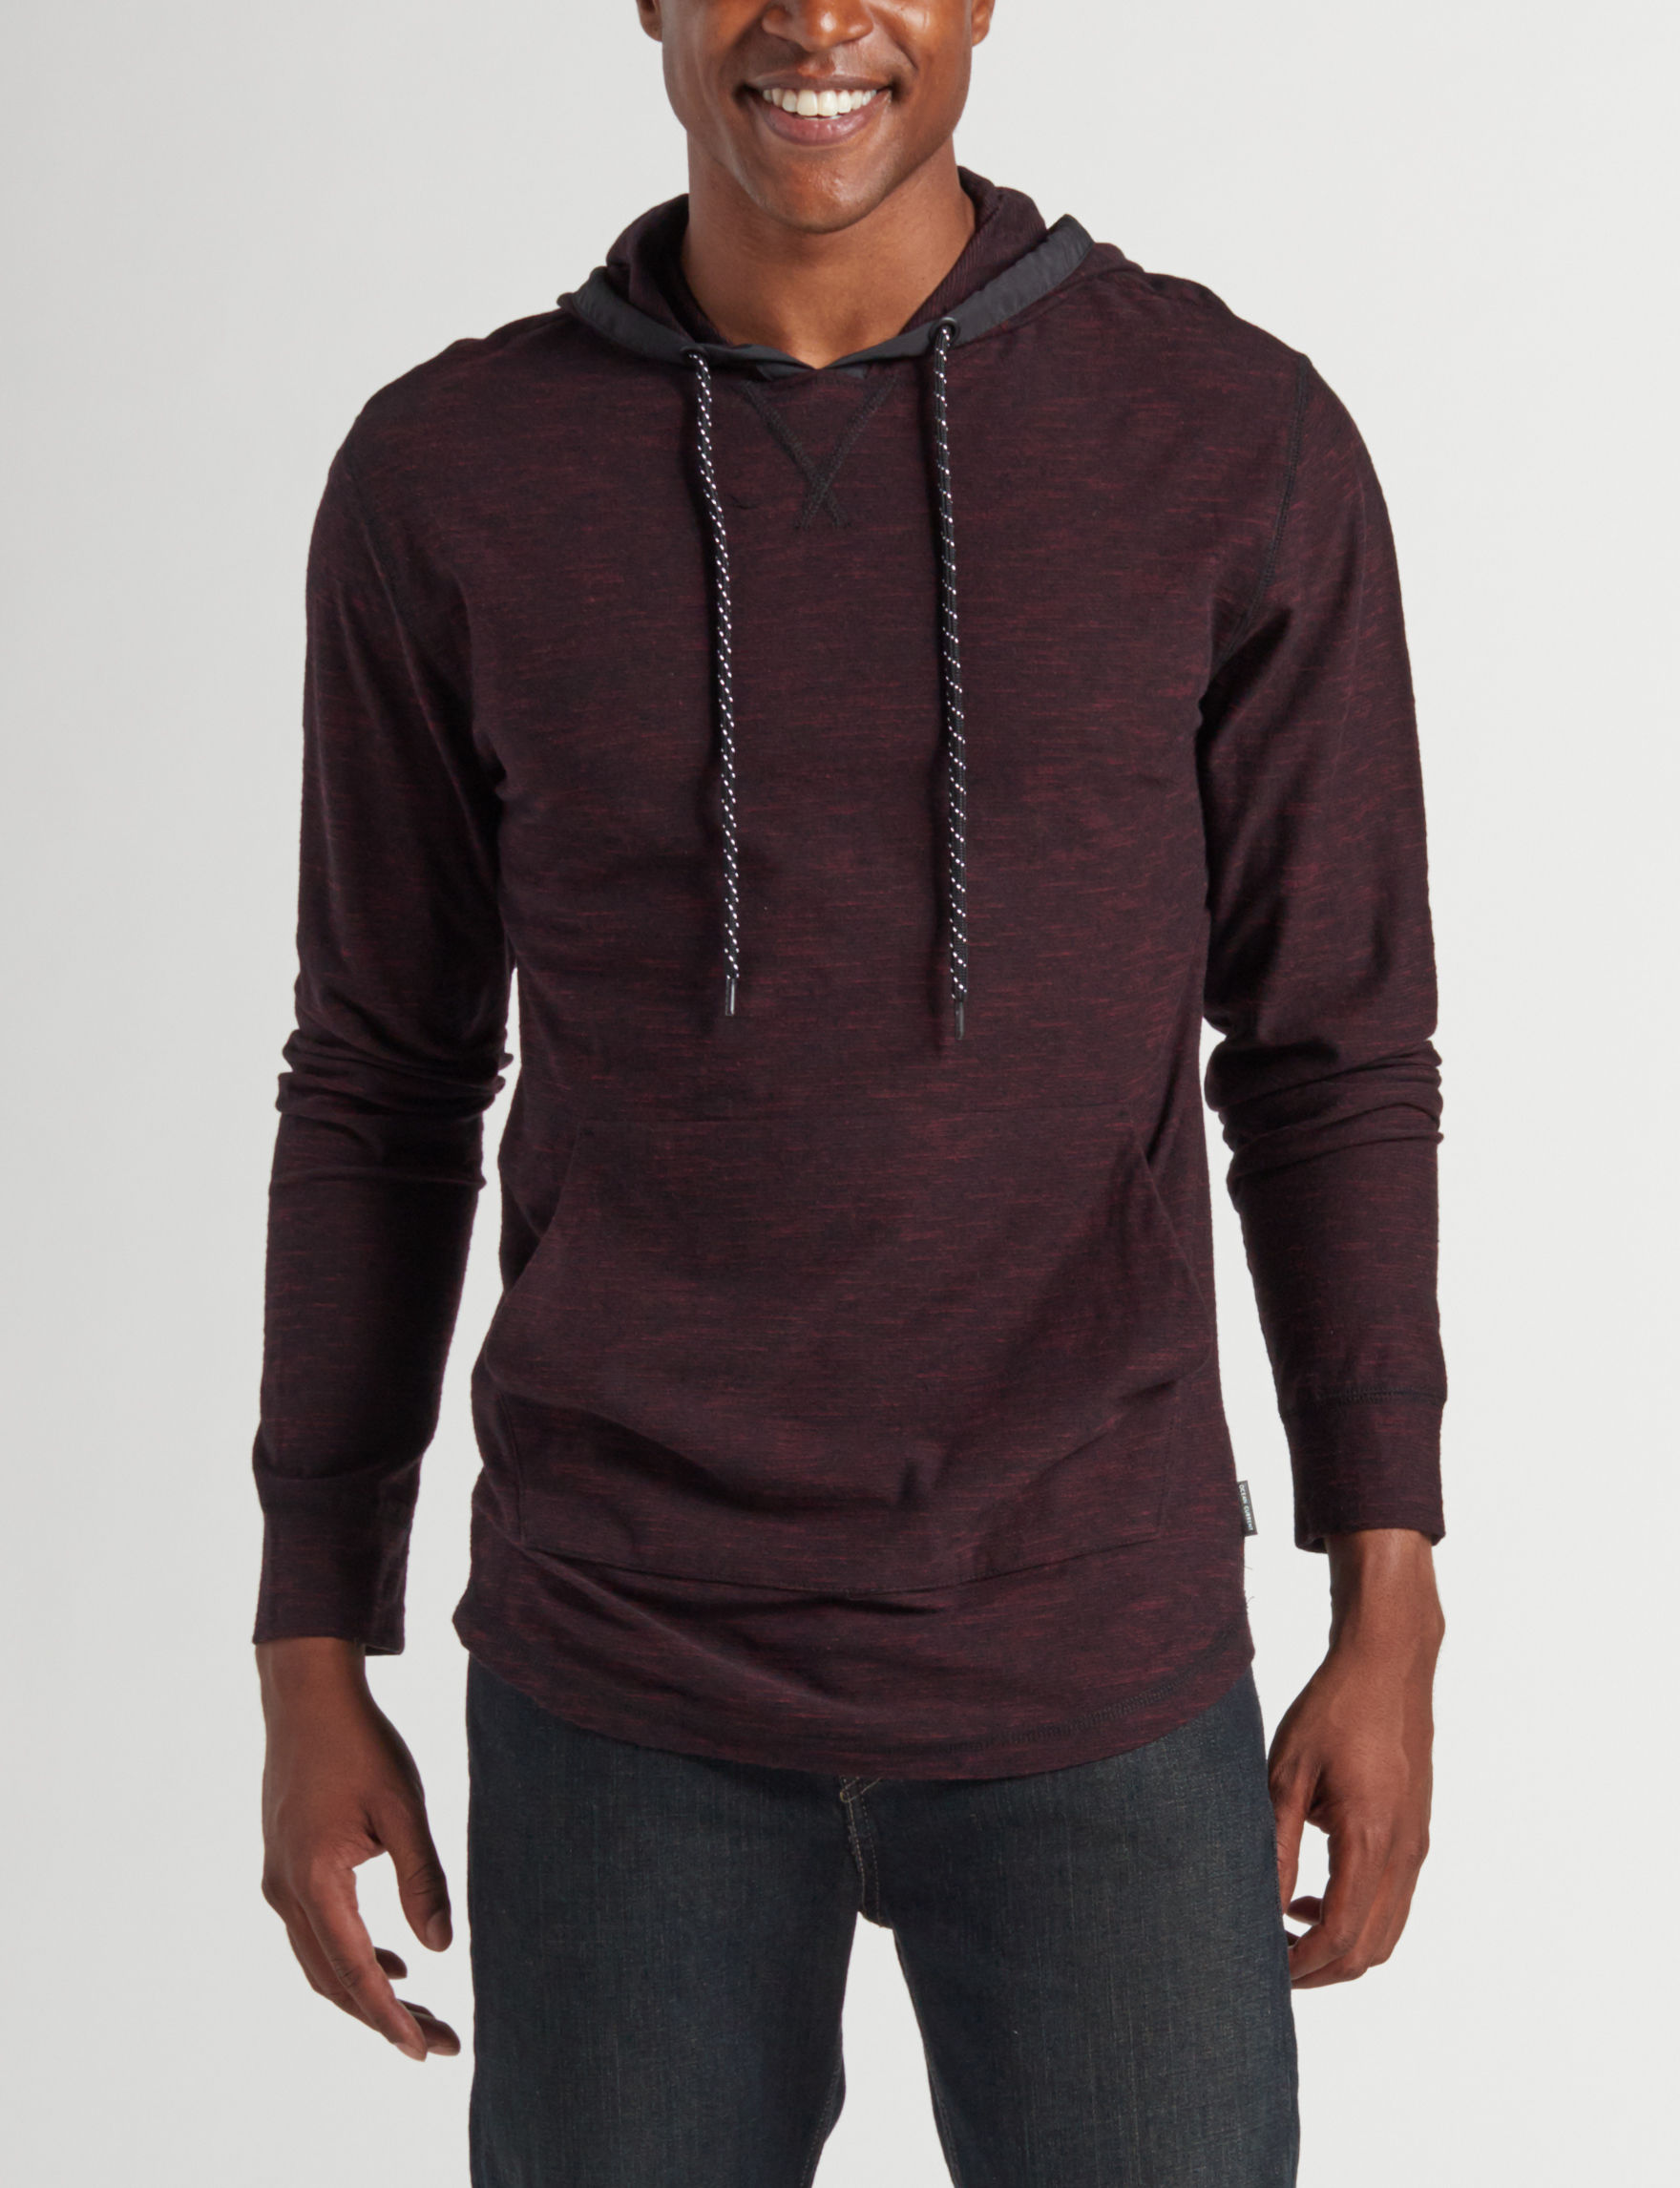 Ocean Current Burgundy Pull-overs